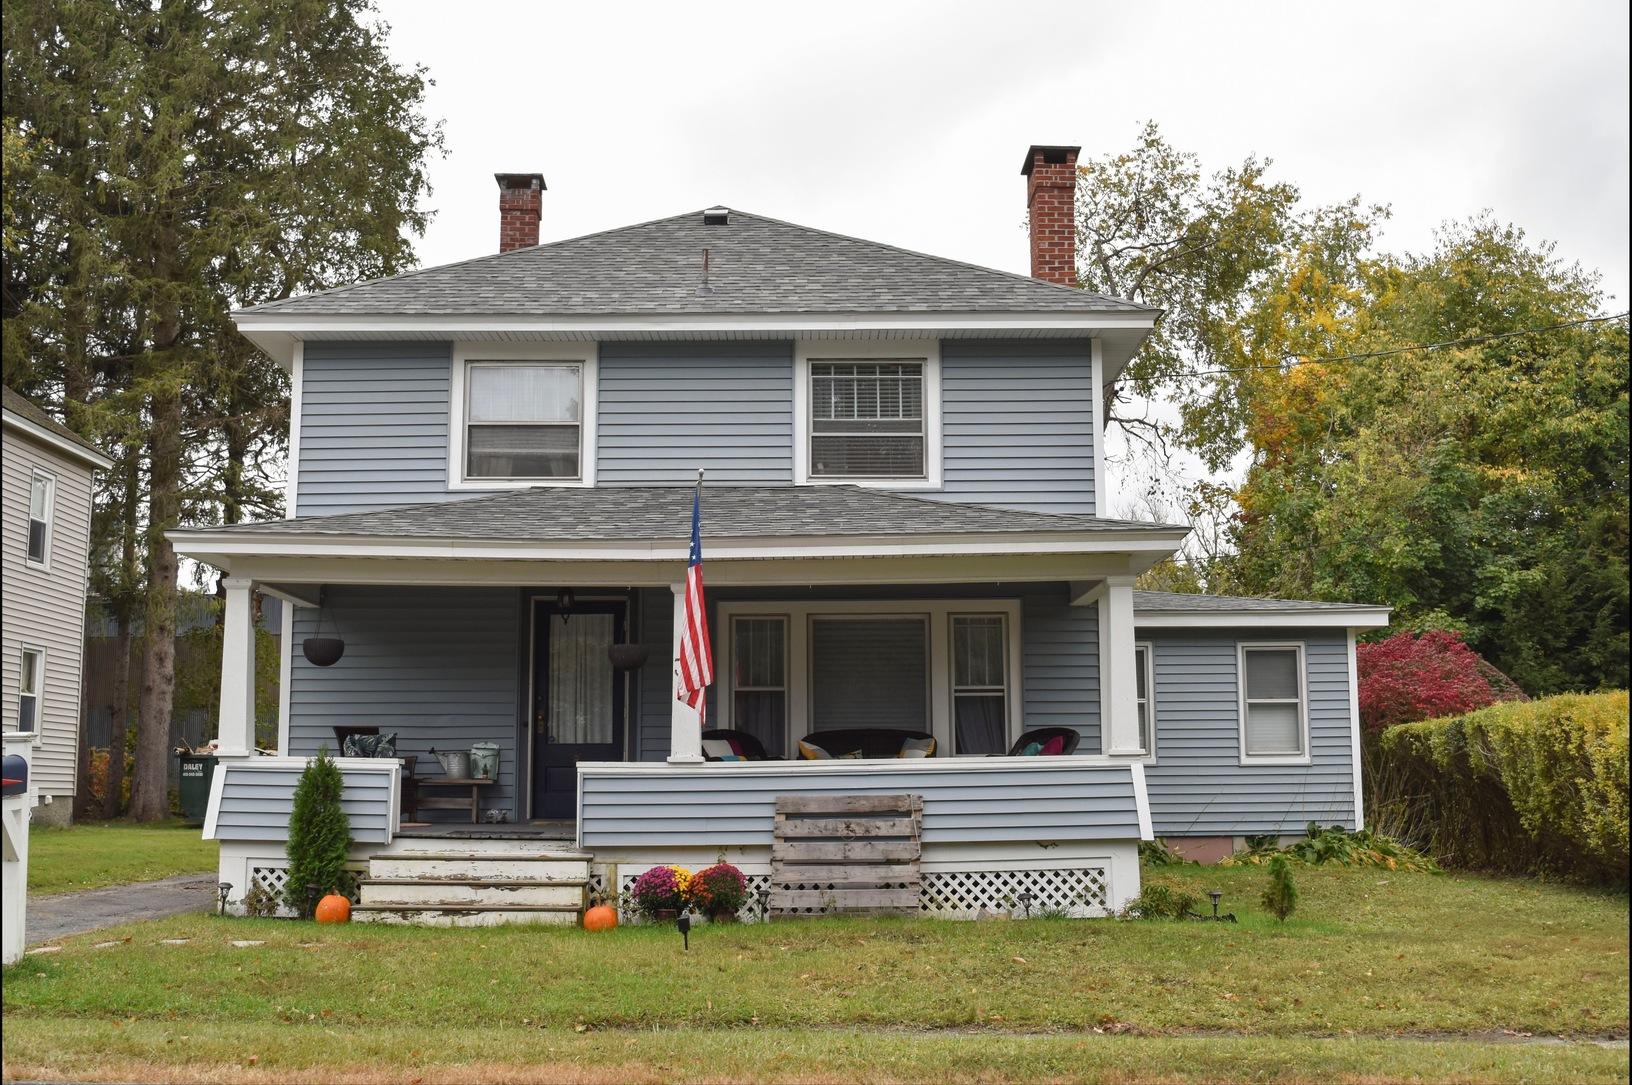 Pittsfield, MA Roof Replacement IKO Dynasty Castle Grey Shingles - After Photo